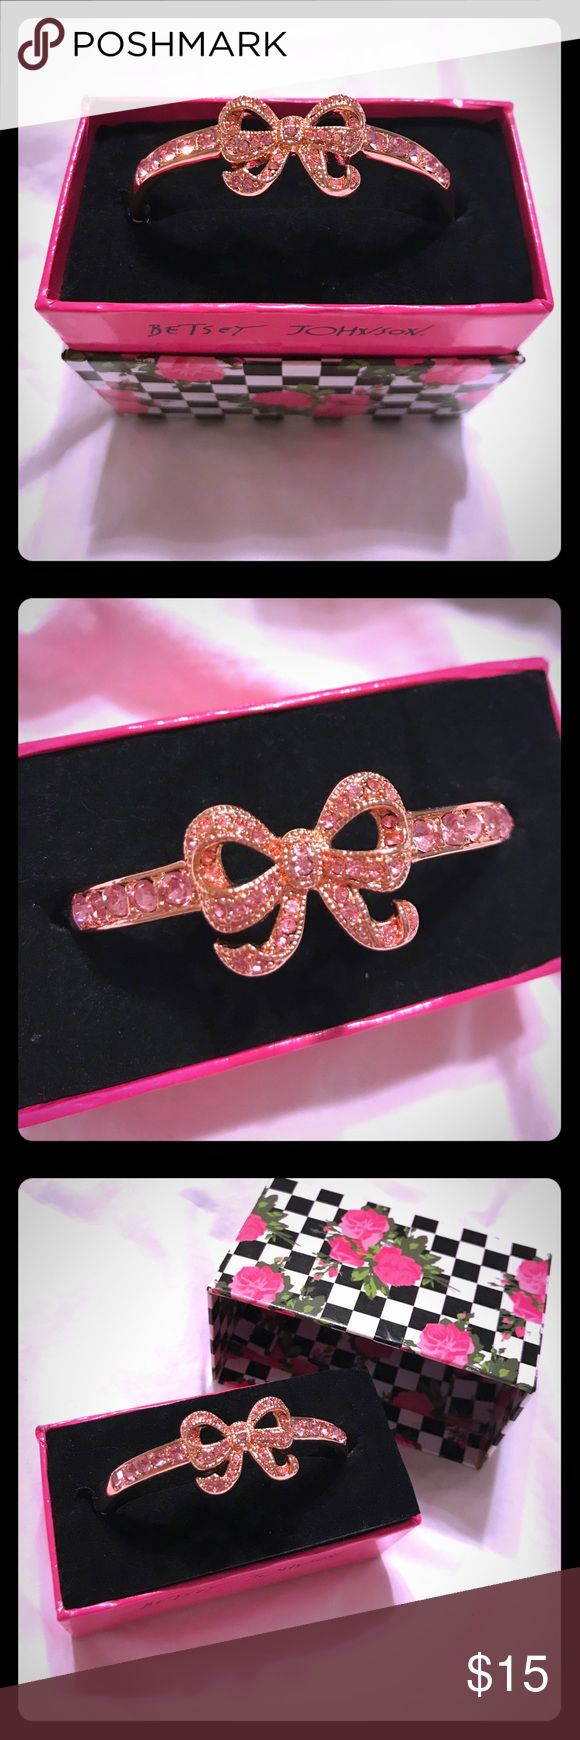 Betsey Johnson Pink Crystal Rosegold Bow Bracelet Super cute Betsey Johnson Pink Crystal Rosegold Bow Bangle Bracelet - new with tags in gift box, never worn - Bracelet is a bangle style with a clasp - Betsey Johnson definitely has her following of cool trendy girls loving her bold fashion, she is legendary!  Great for wearing on a date or a night out with the girls - it would even be perfect to wear to prom or a wedding!  Super cute summer steal! Betsey Johnson Jewelry Bracelets